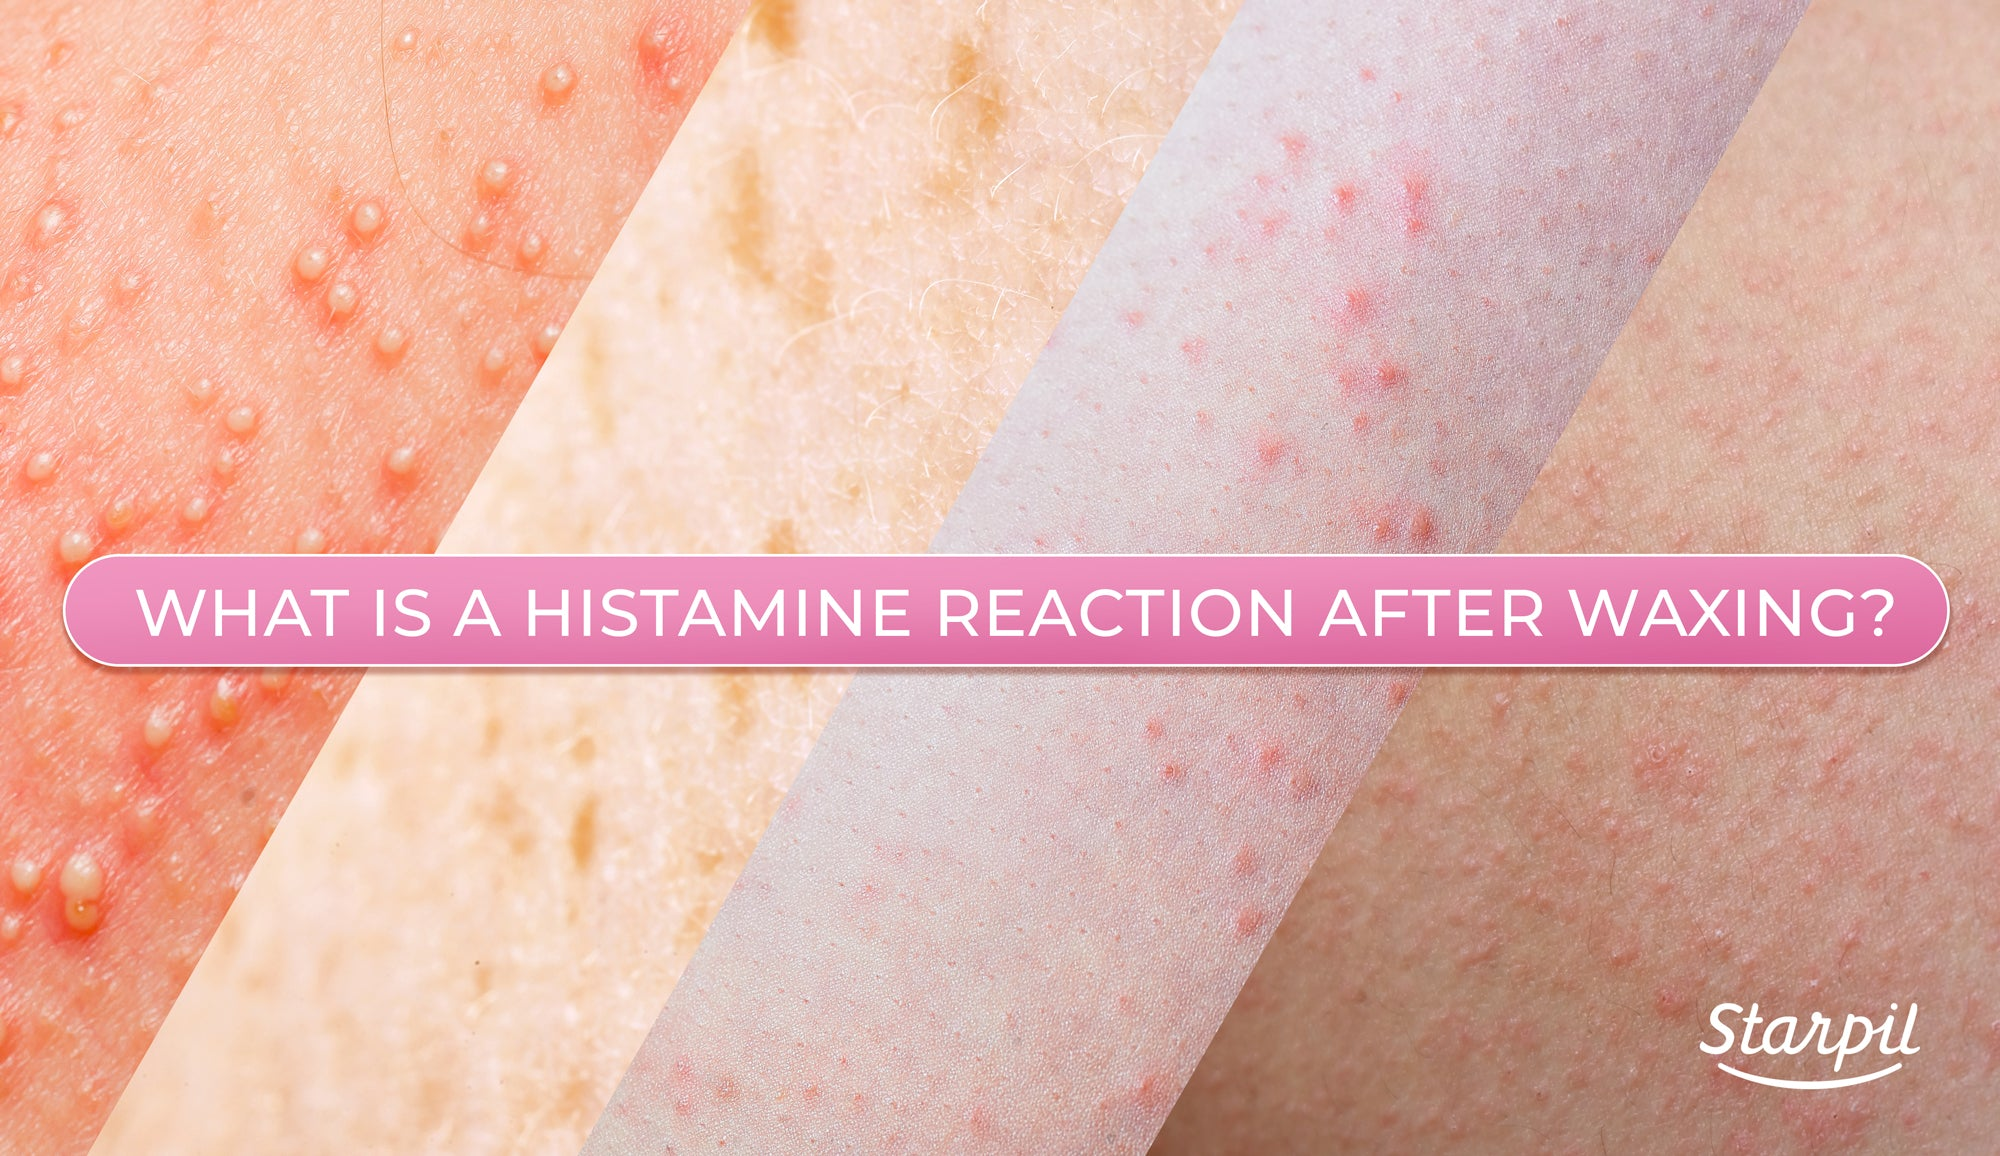 histamine reactions after waxing